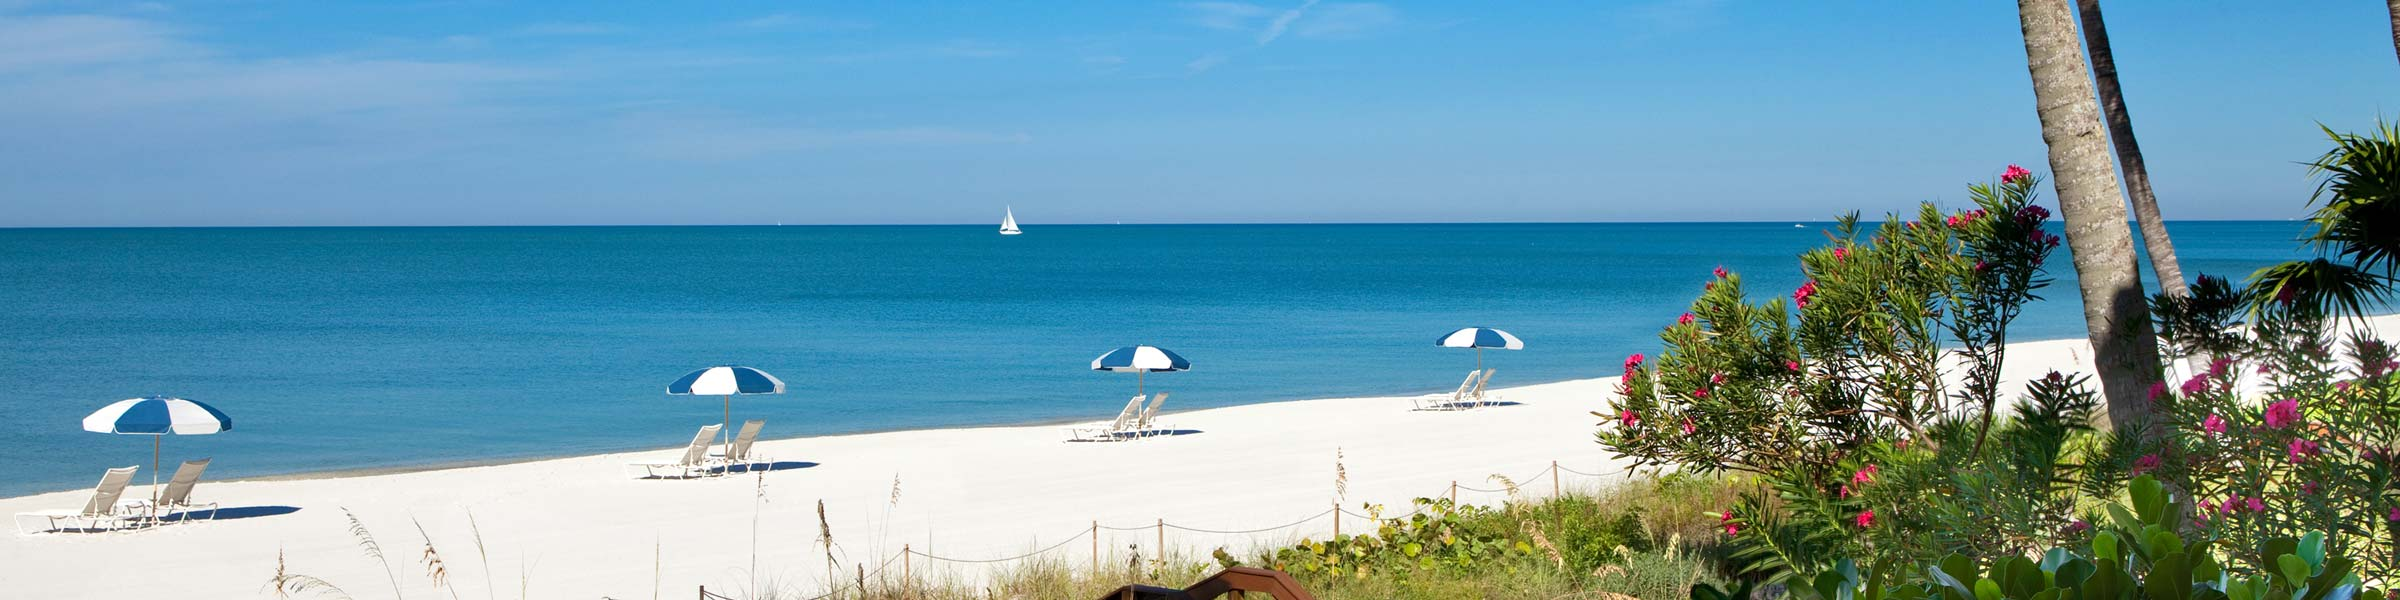 Beach view with lounge chairs and umbrellas in Naples, FL